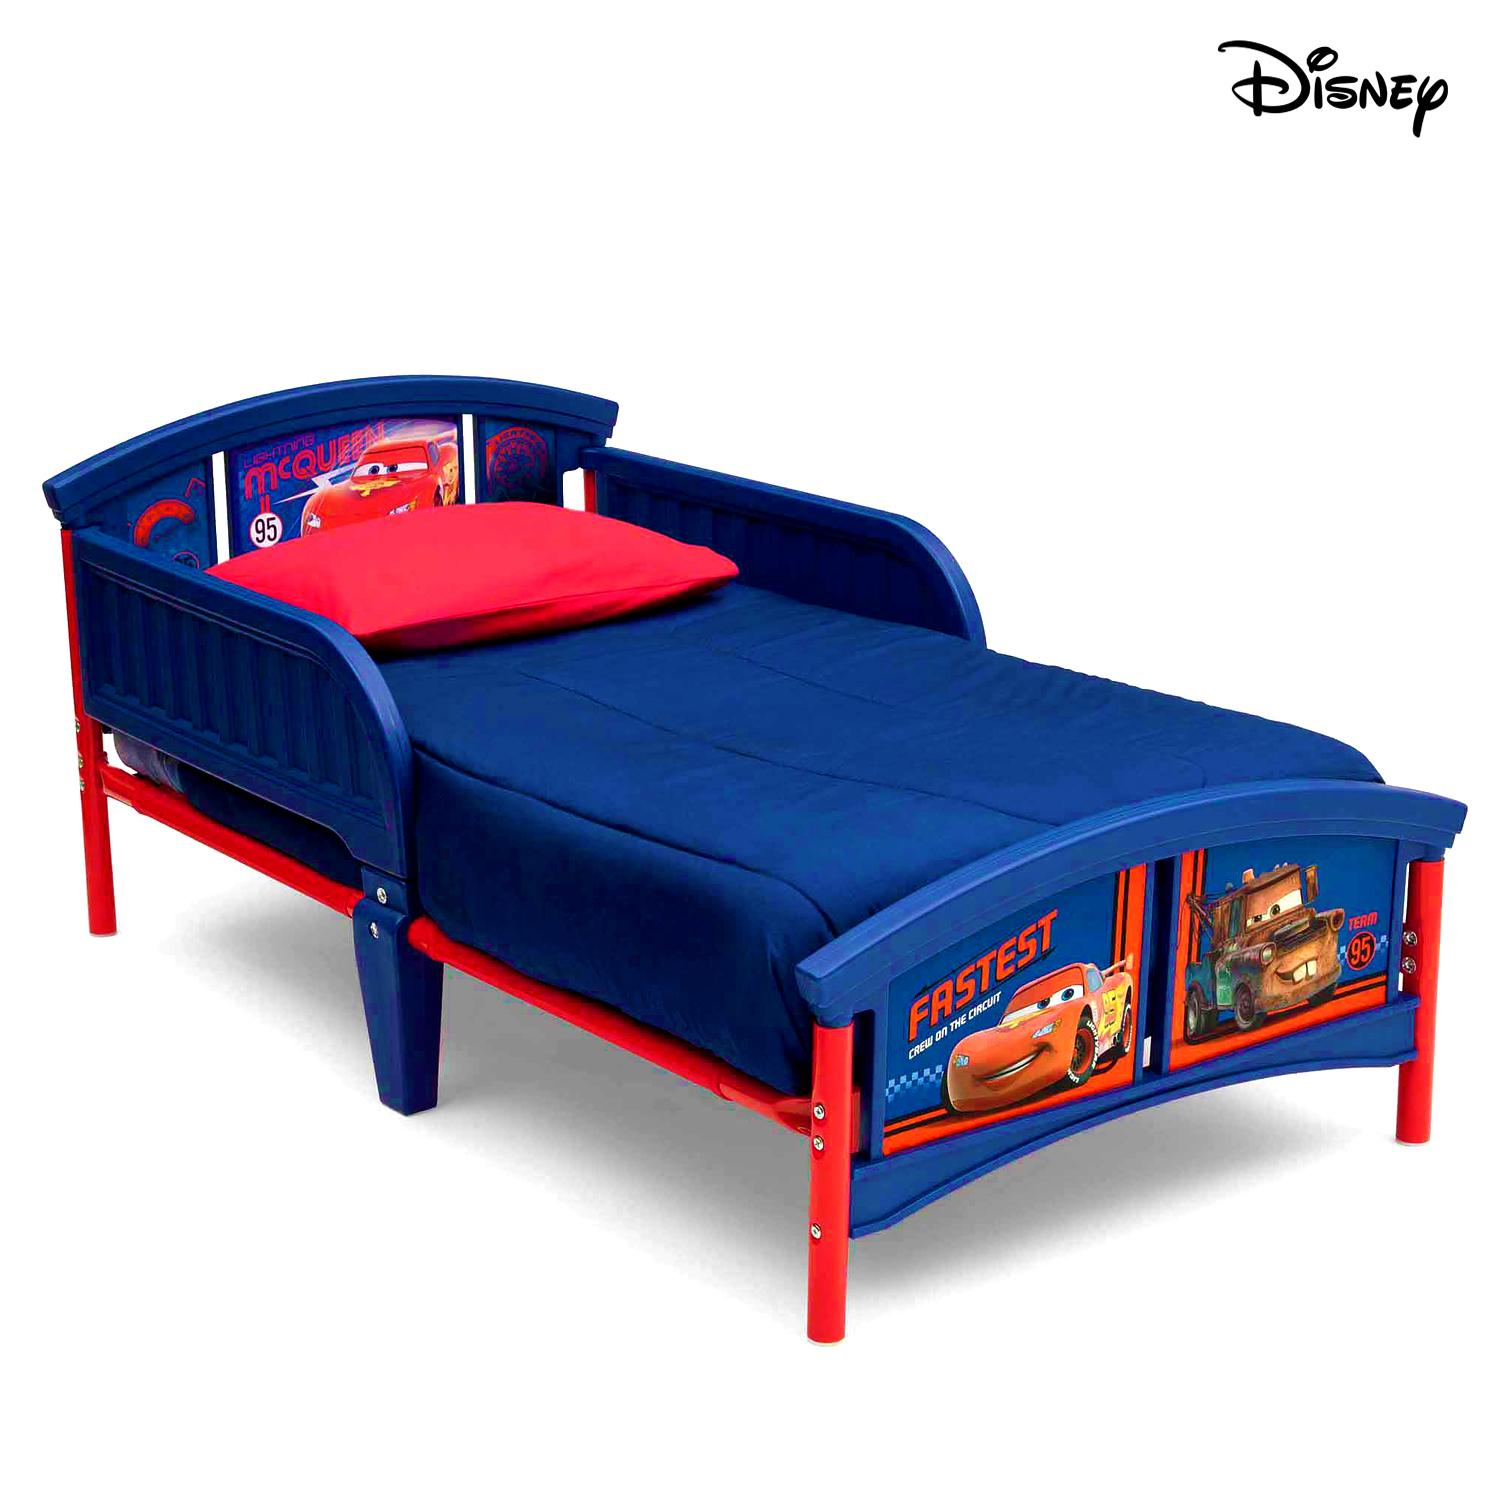 Toddler Beds for sale Kids Beds online brands prices & reviews in